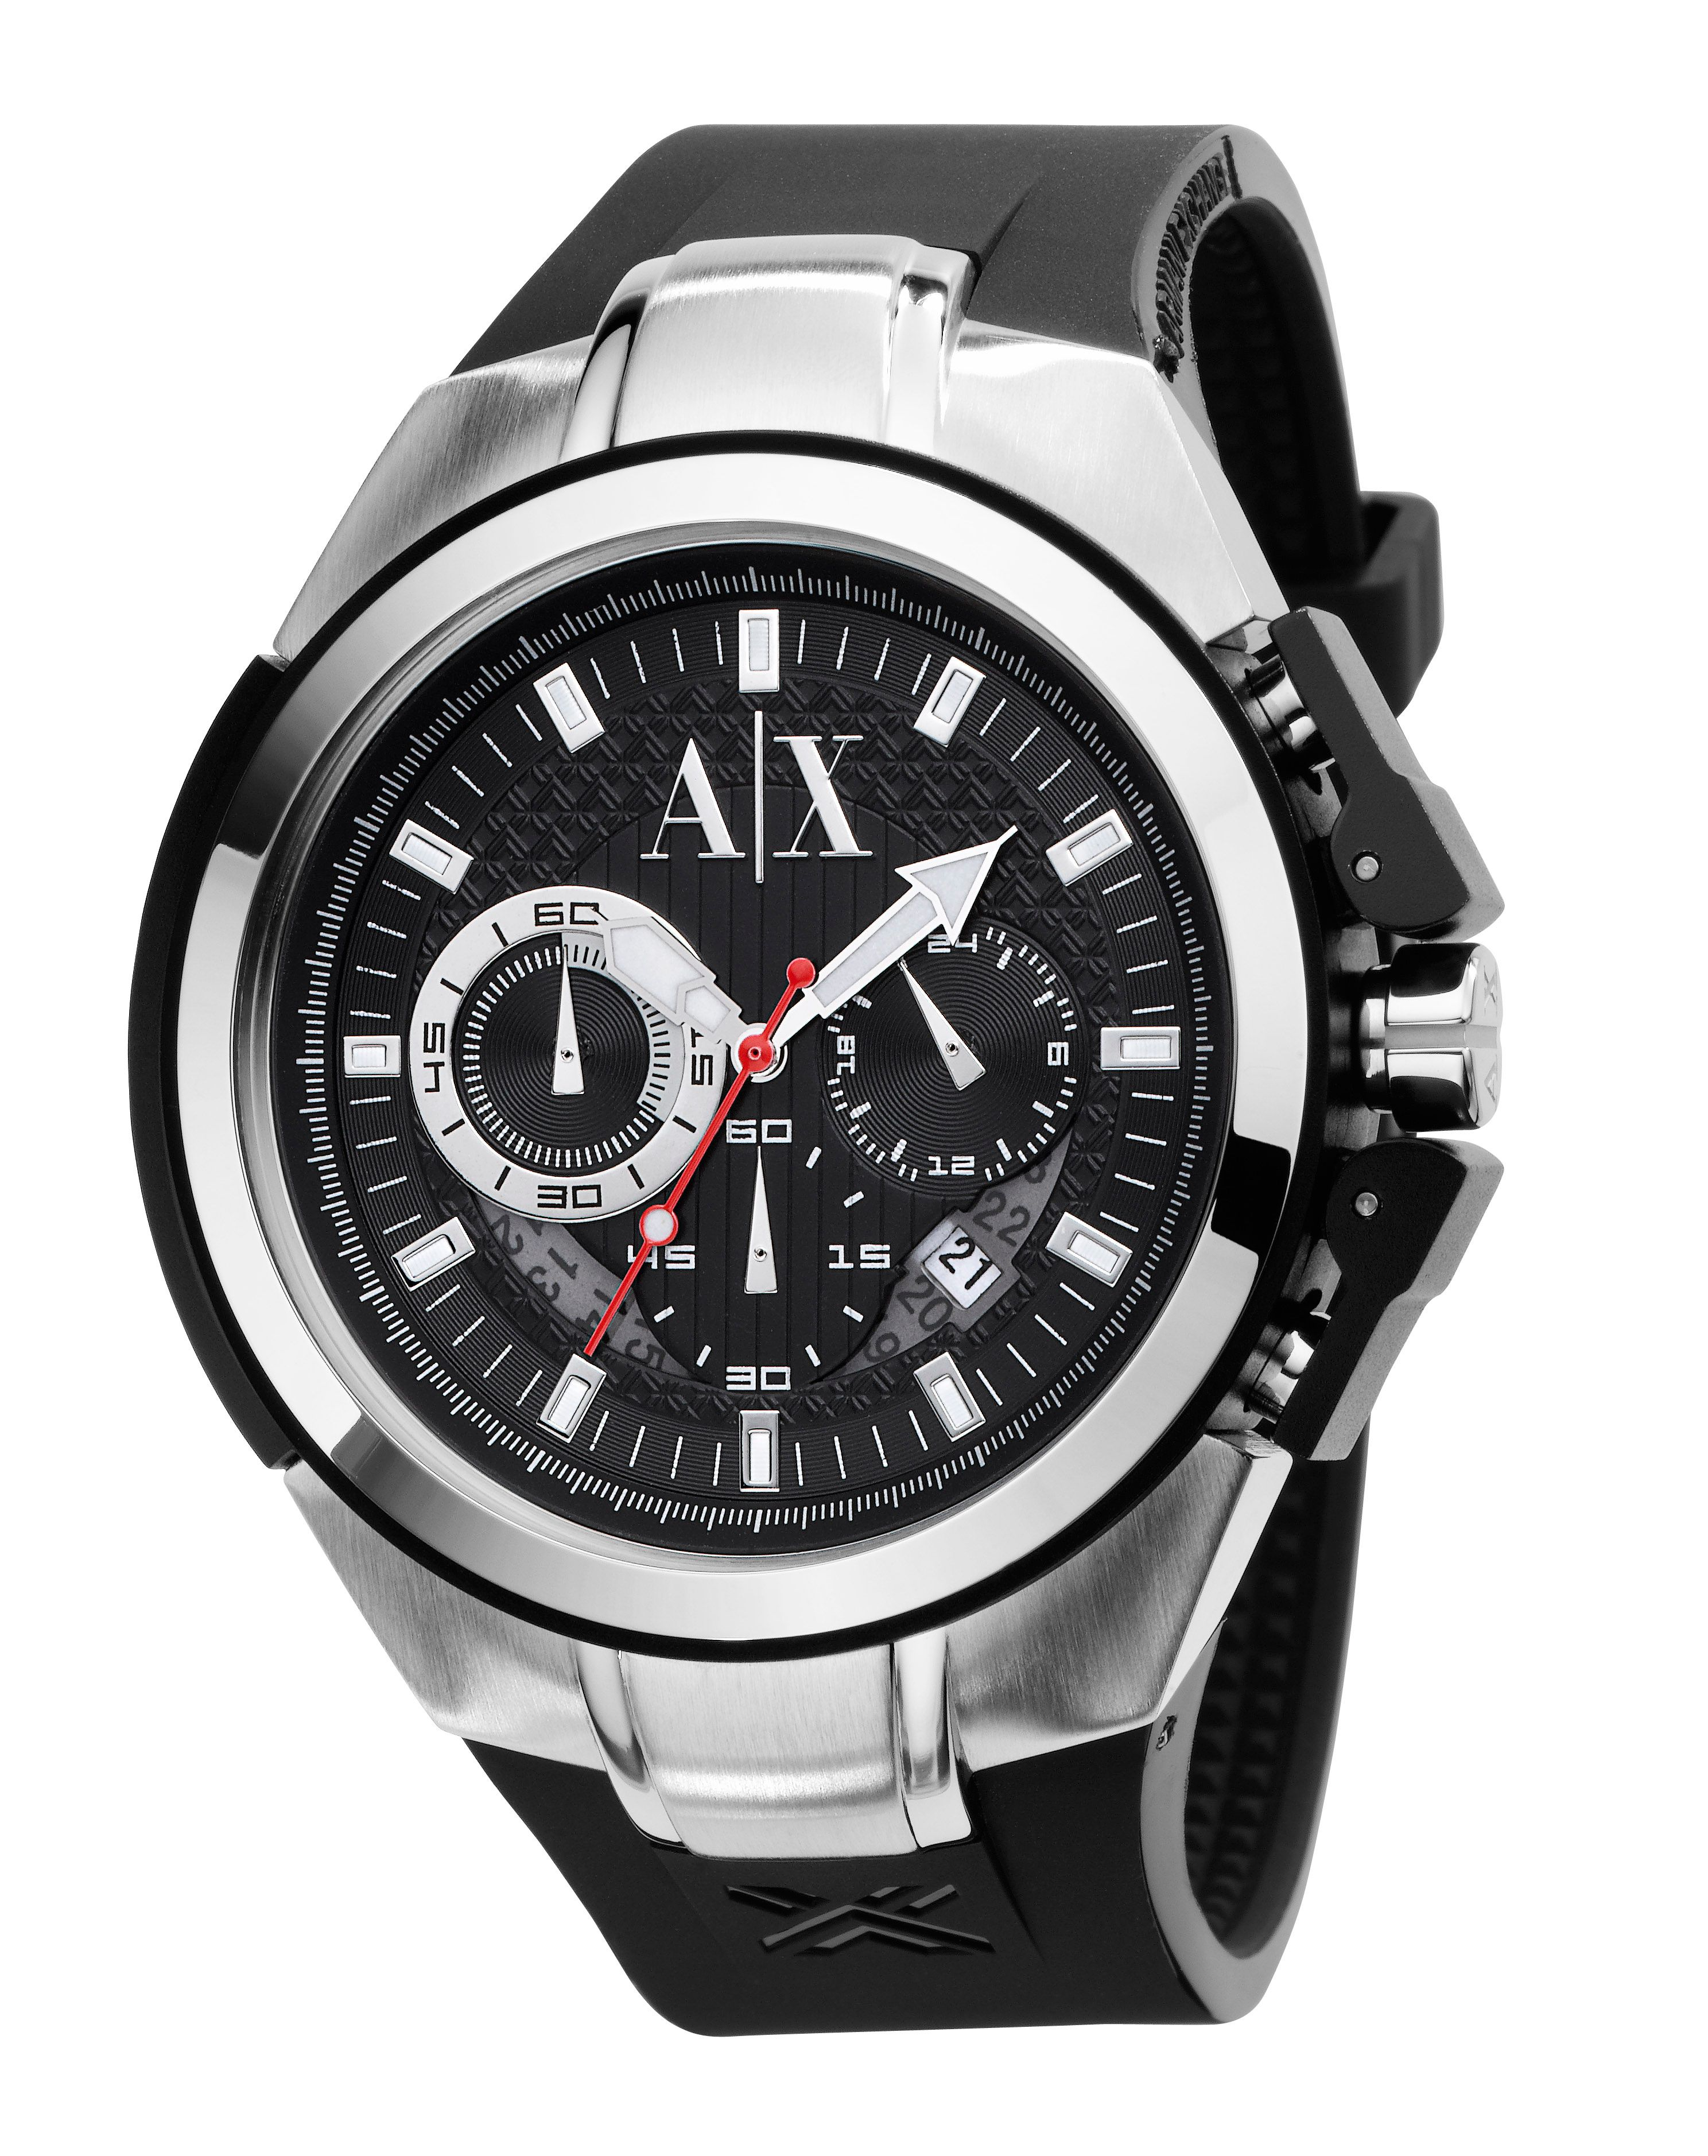 Armani Exchange AX1042 Urban Vibe Mens Watch, product image